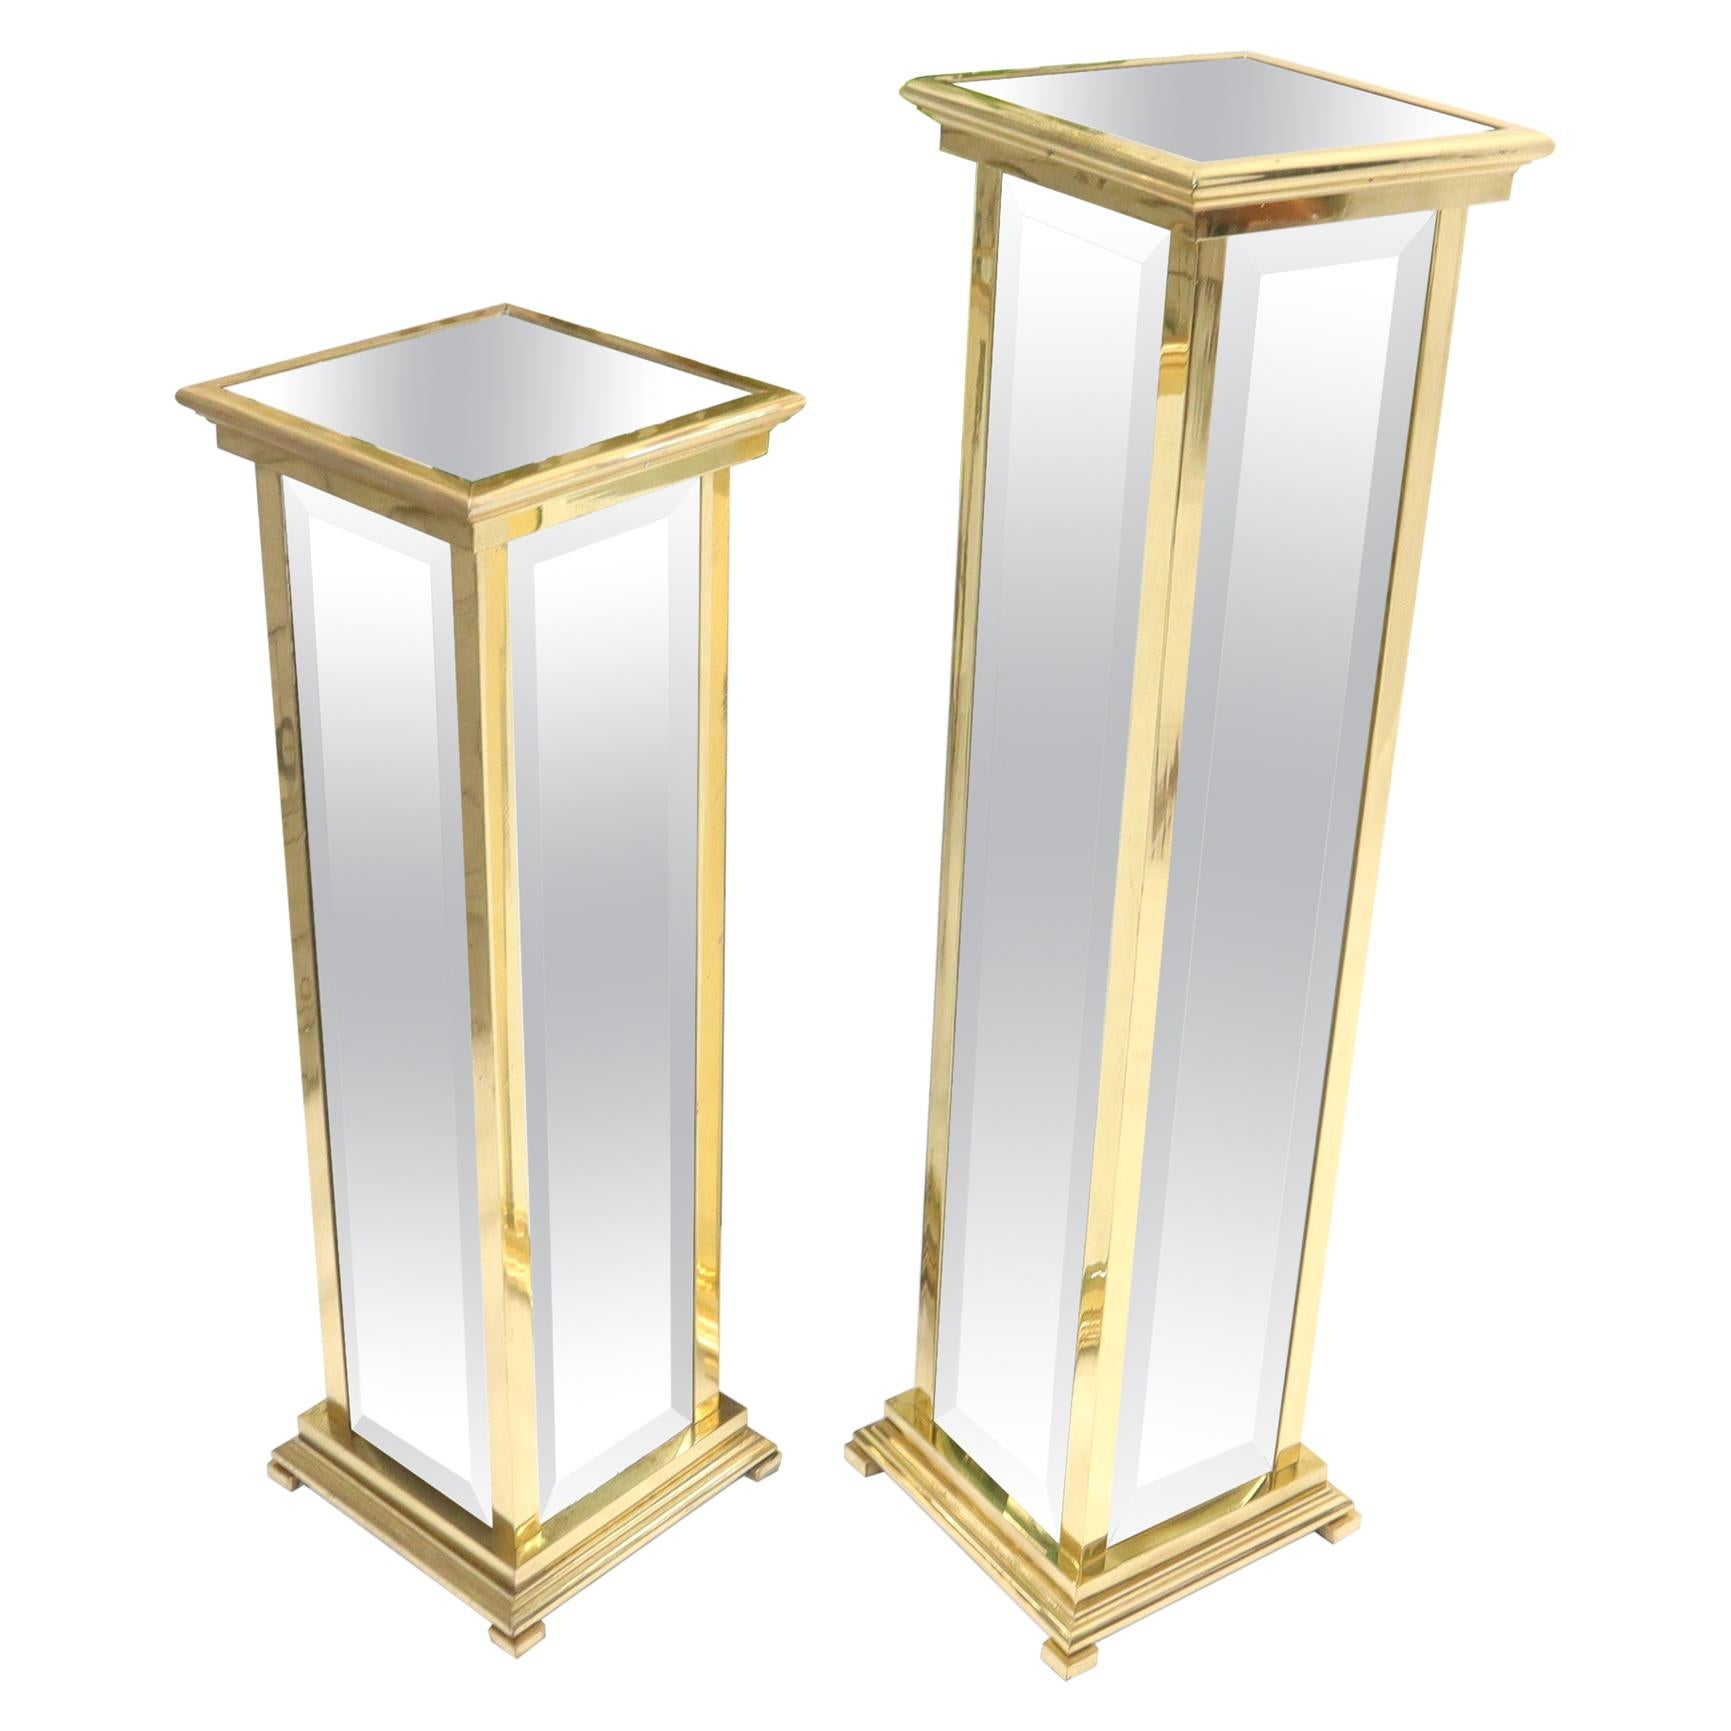 Square Brass and Mirror Panels Pedestals Stands